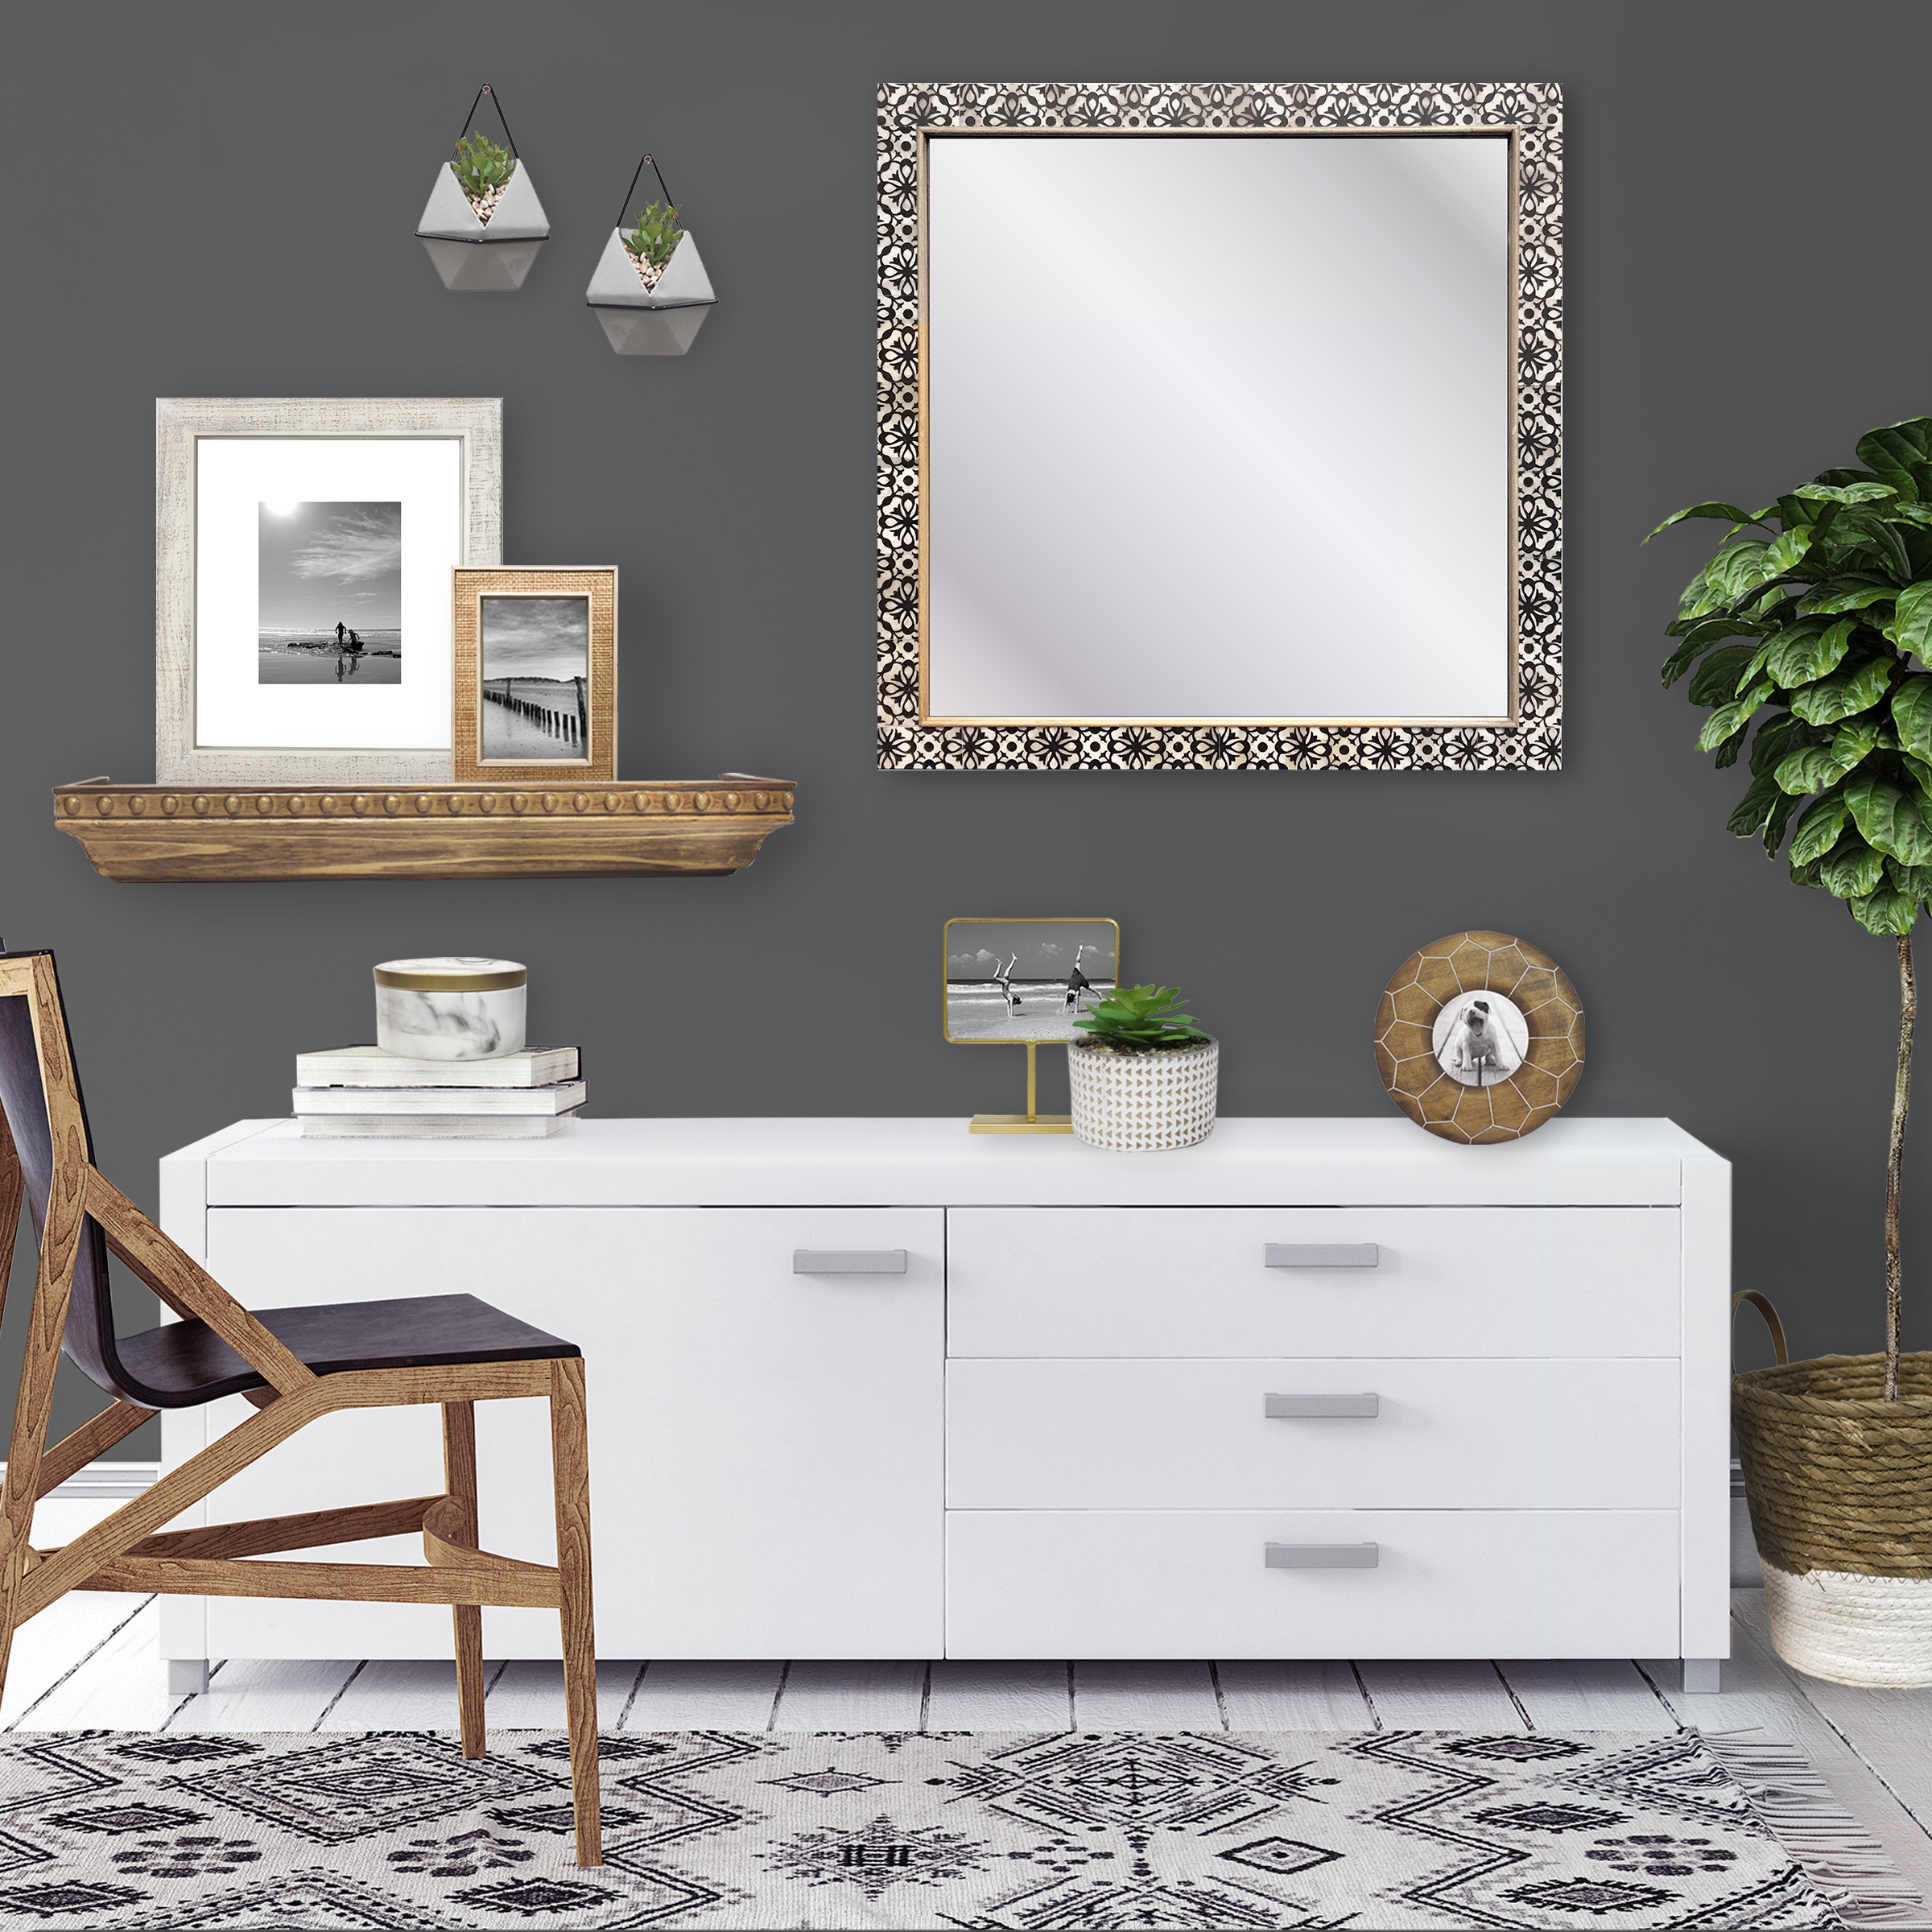 What we do - As a leading manufacturer of home décor products, we deliver the highest quality items at an affordable price for all. We are trend savvy, but also focus on providing value with elevated solutions for our consumers everyday décor needs.